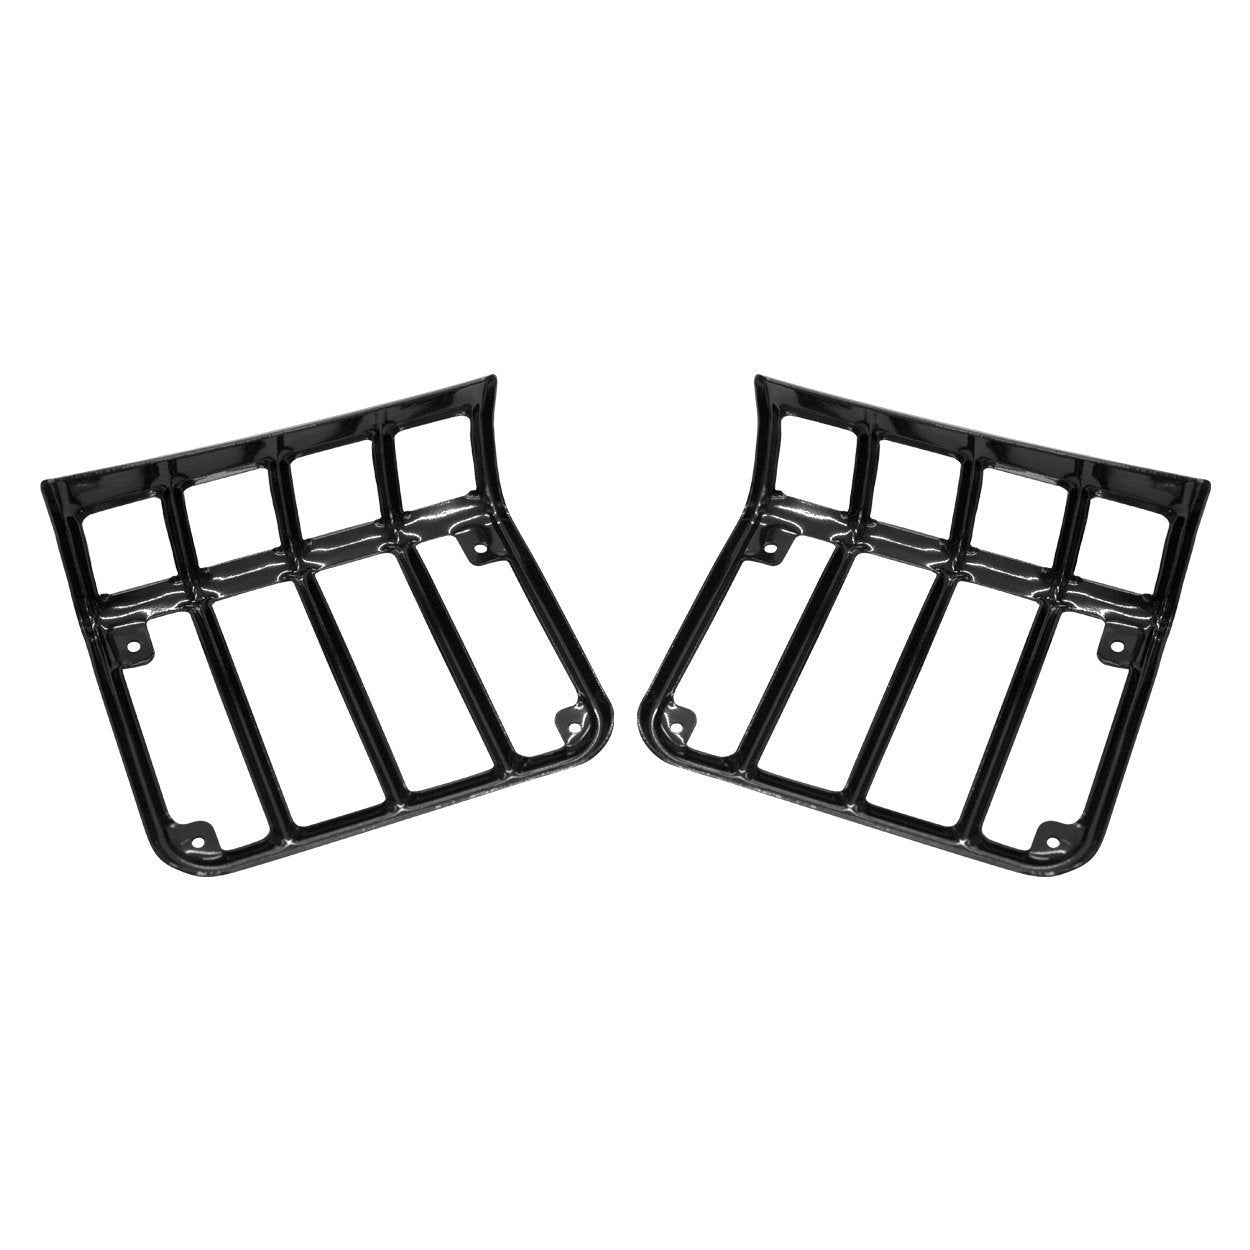 Euro Black Taillight Guards for Jeep Wrangler JK 07-17